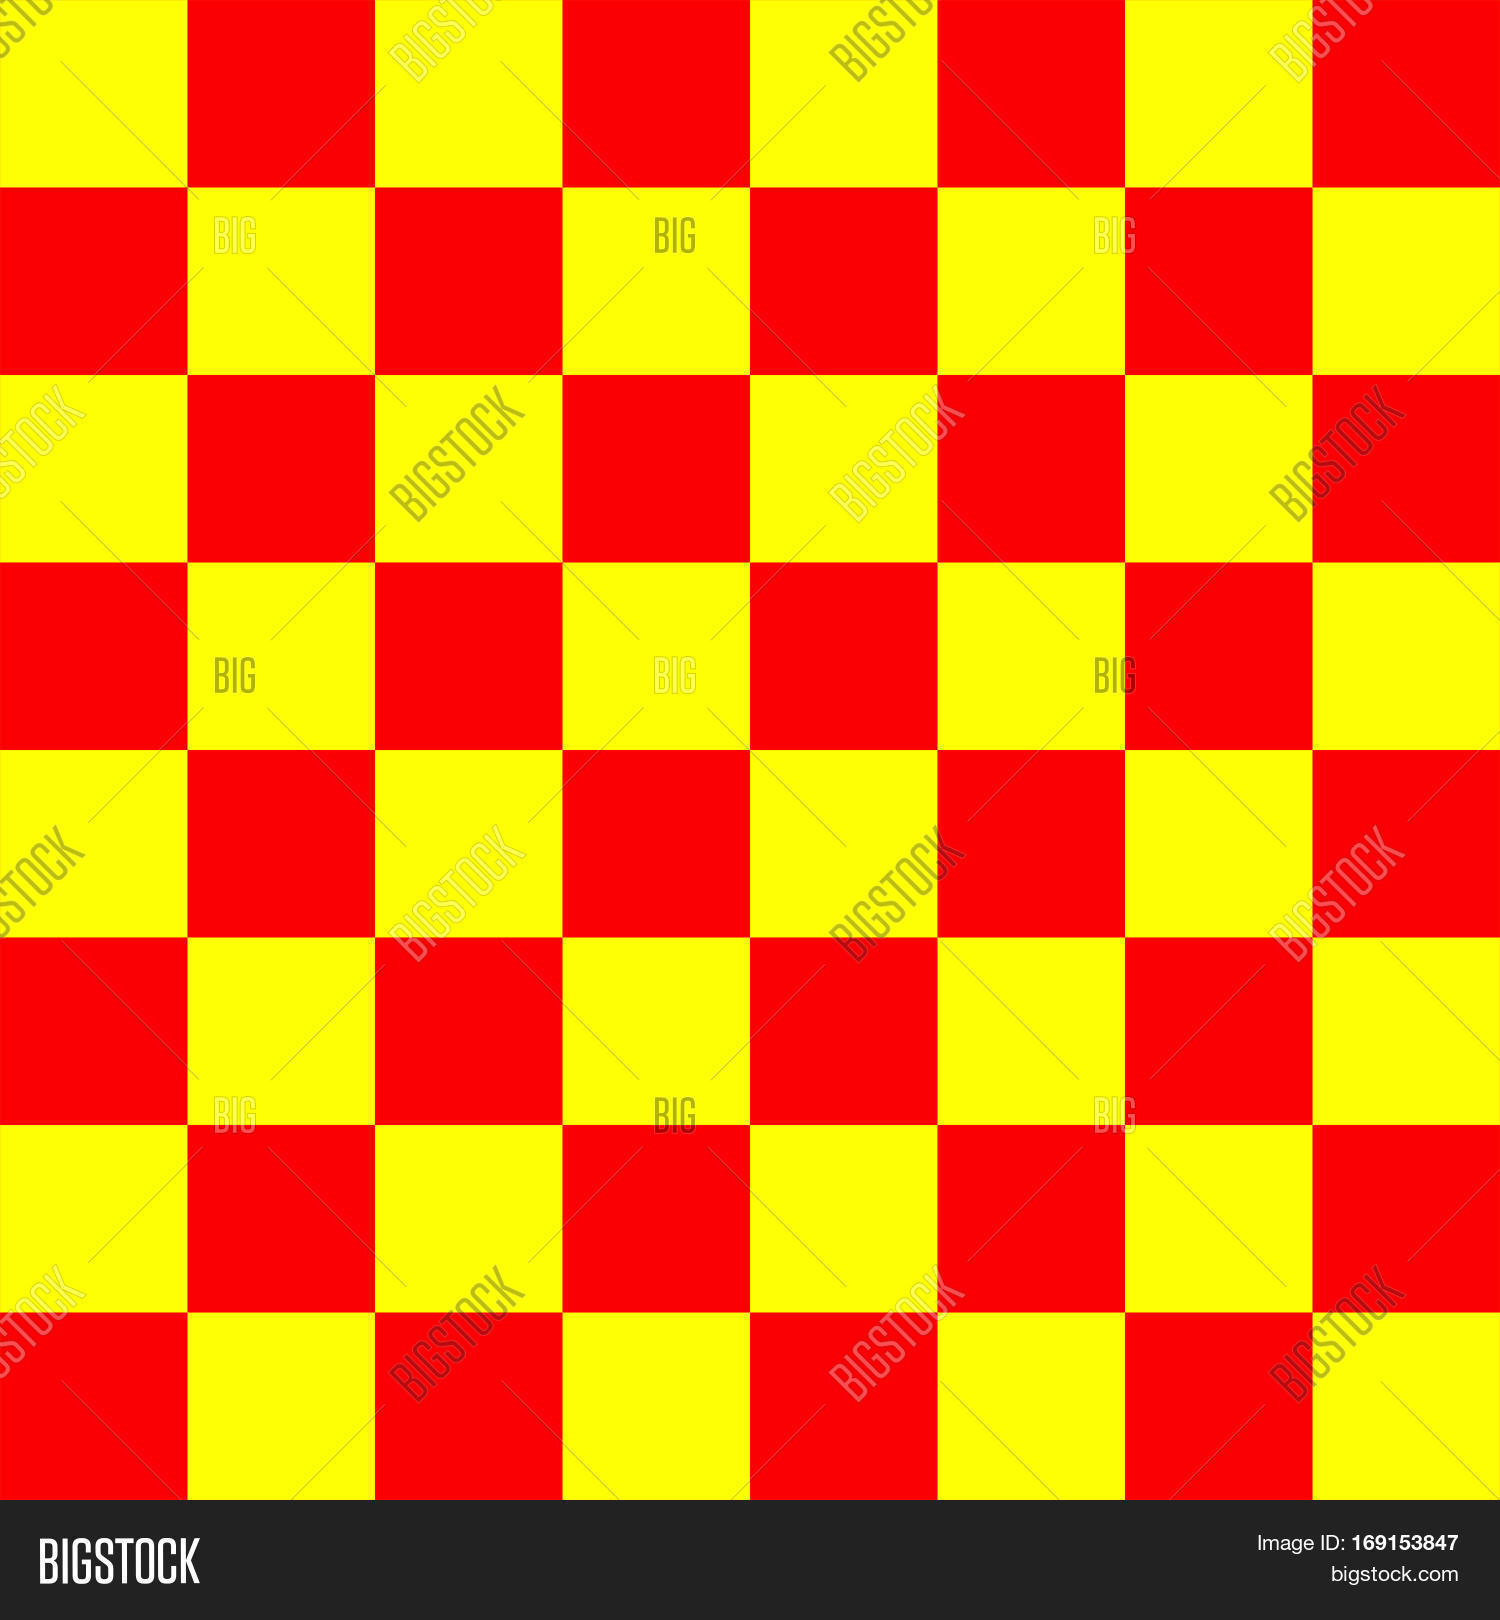 Red And Yellow Chess Board 8 By Grid High Resolution Background Repeatable